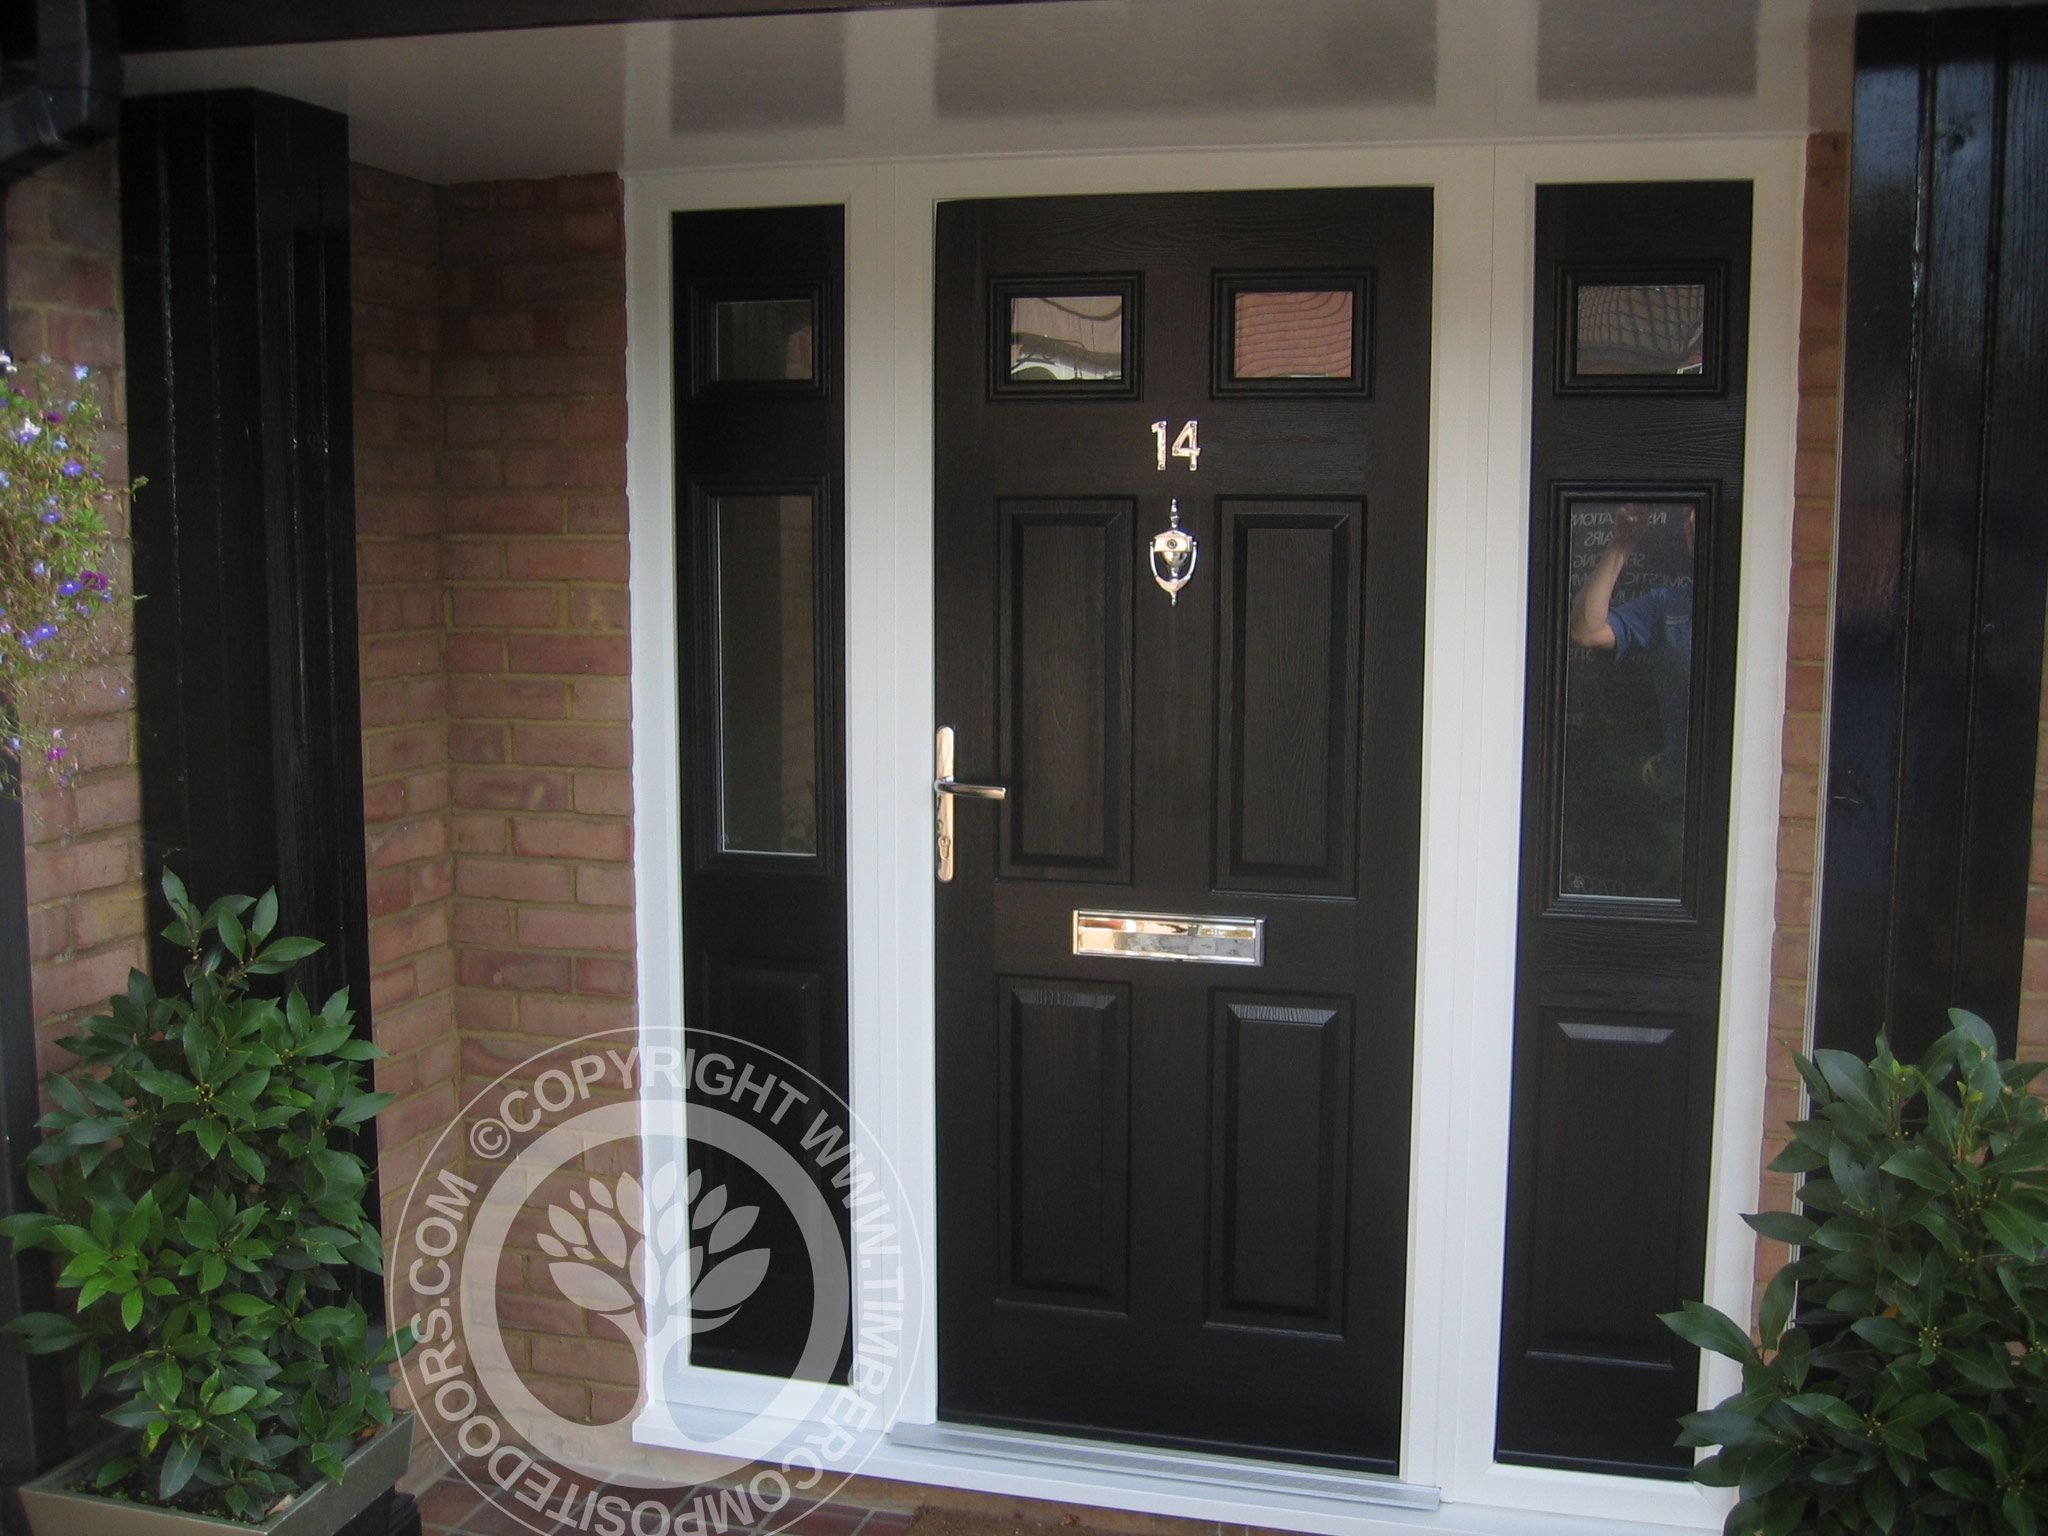 Collection wooden panel door design pictures images picture are - Solidor Tenby Composite Door In Black With Frames And Side Panels Part Of Our Timber Core Composite Door Range From The Solidor Collection You Can Design